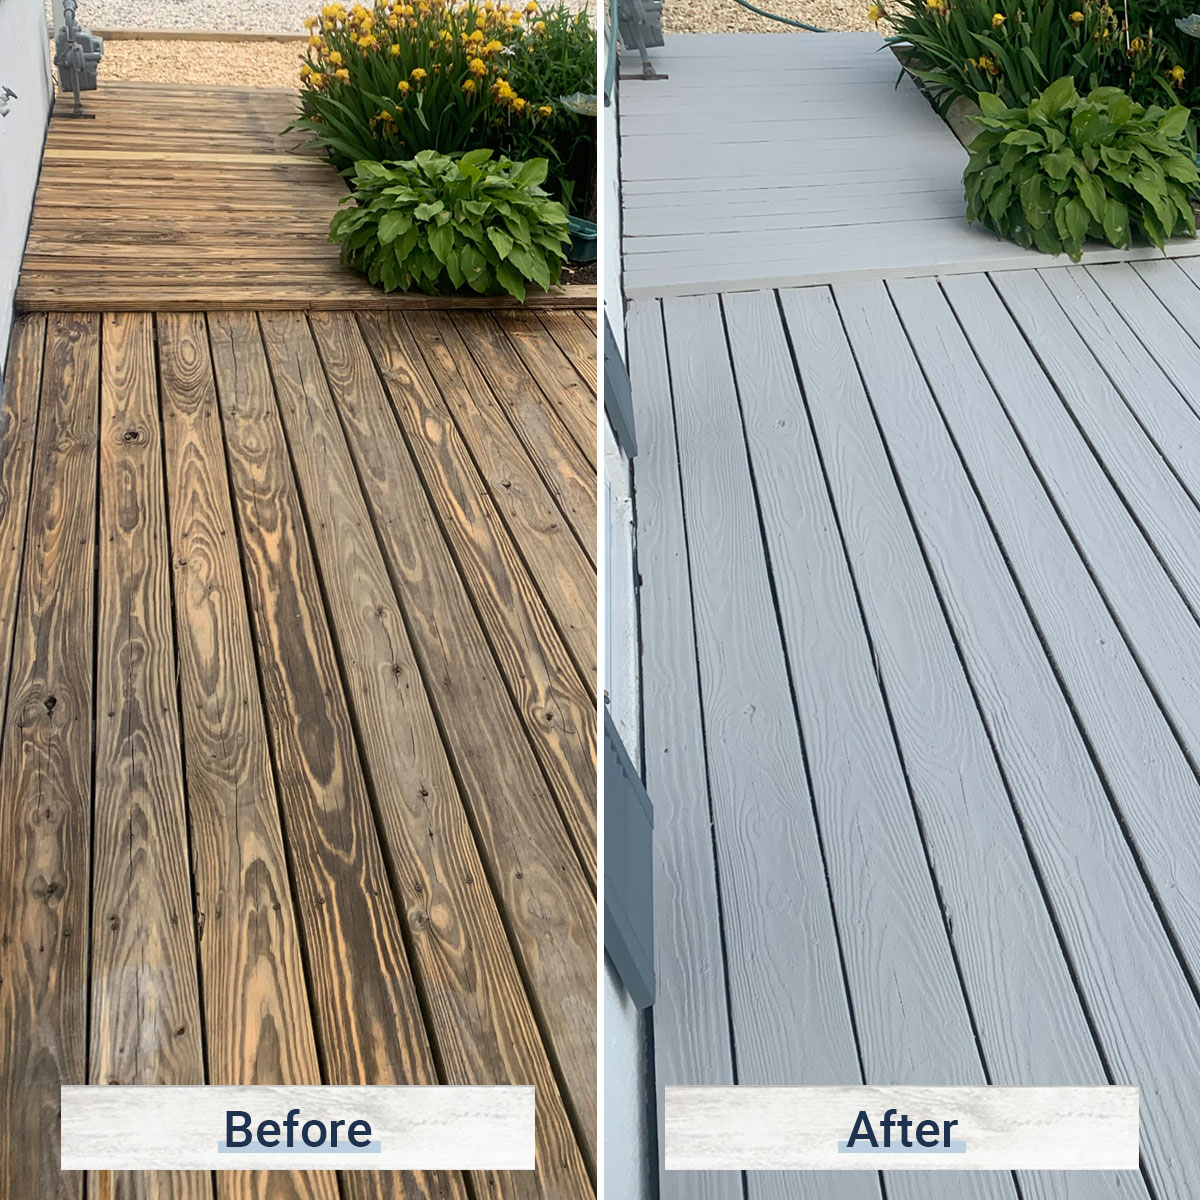 dock 2 before and after